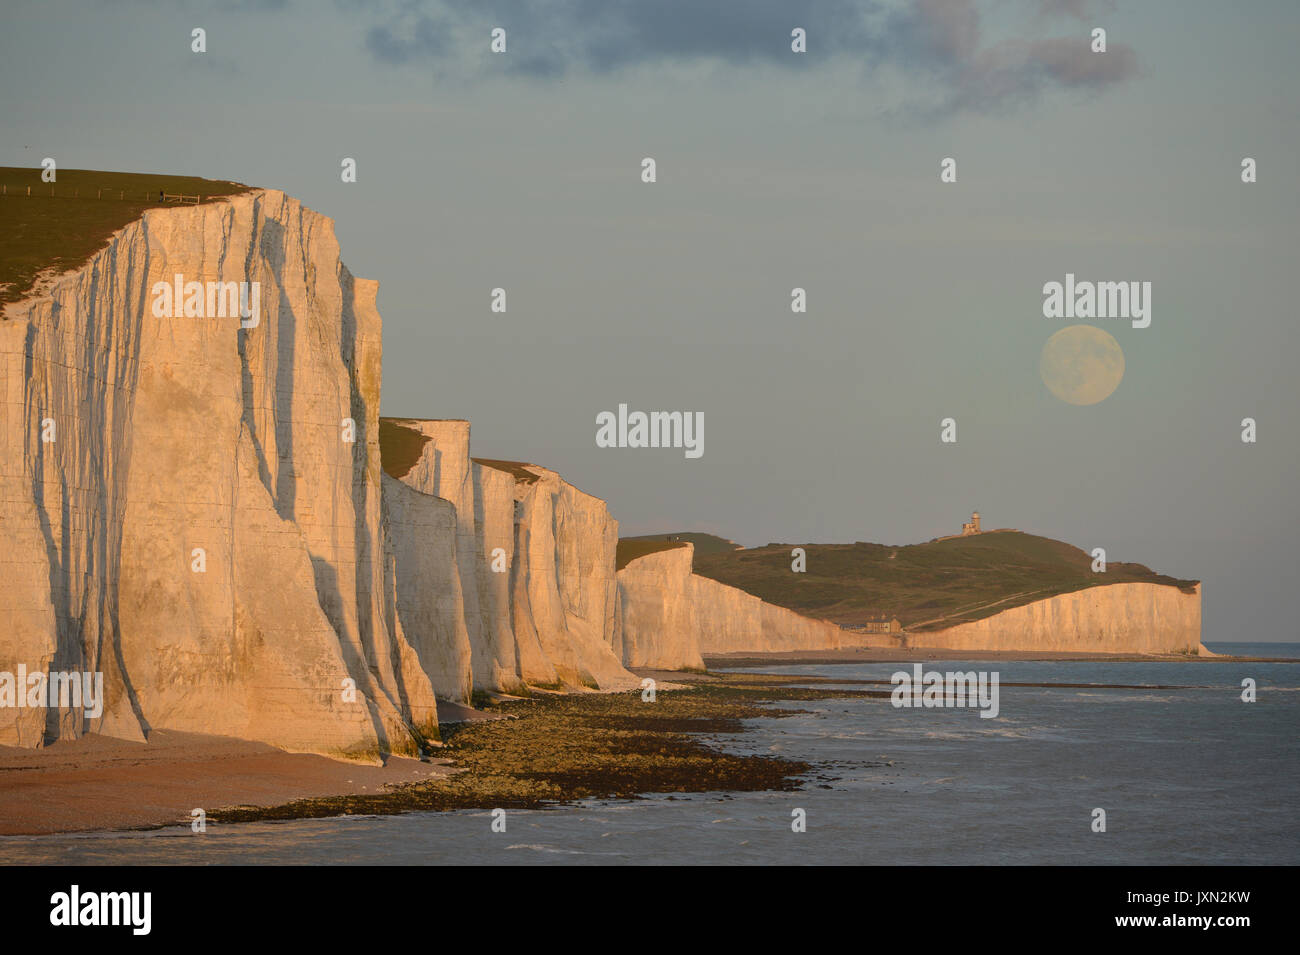 Moon rising over the Seven Sisters chalk cliffs at sunset. - Stock Image